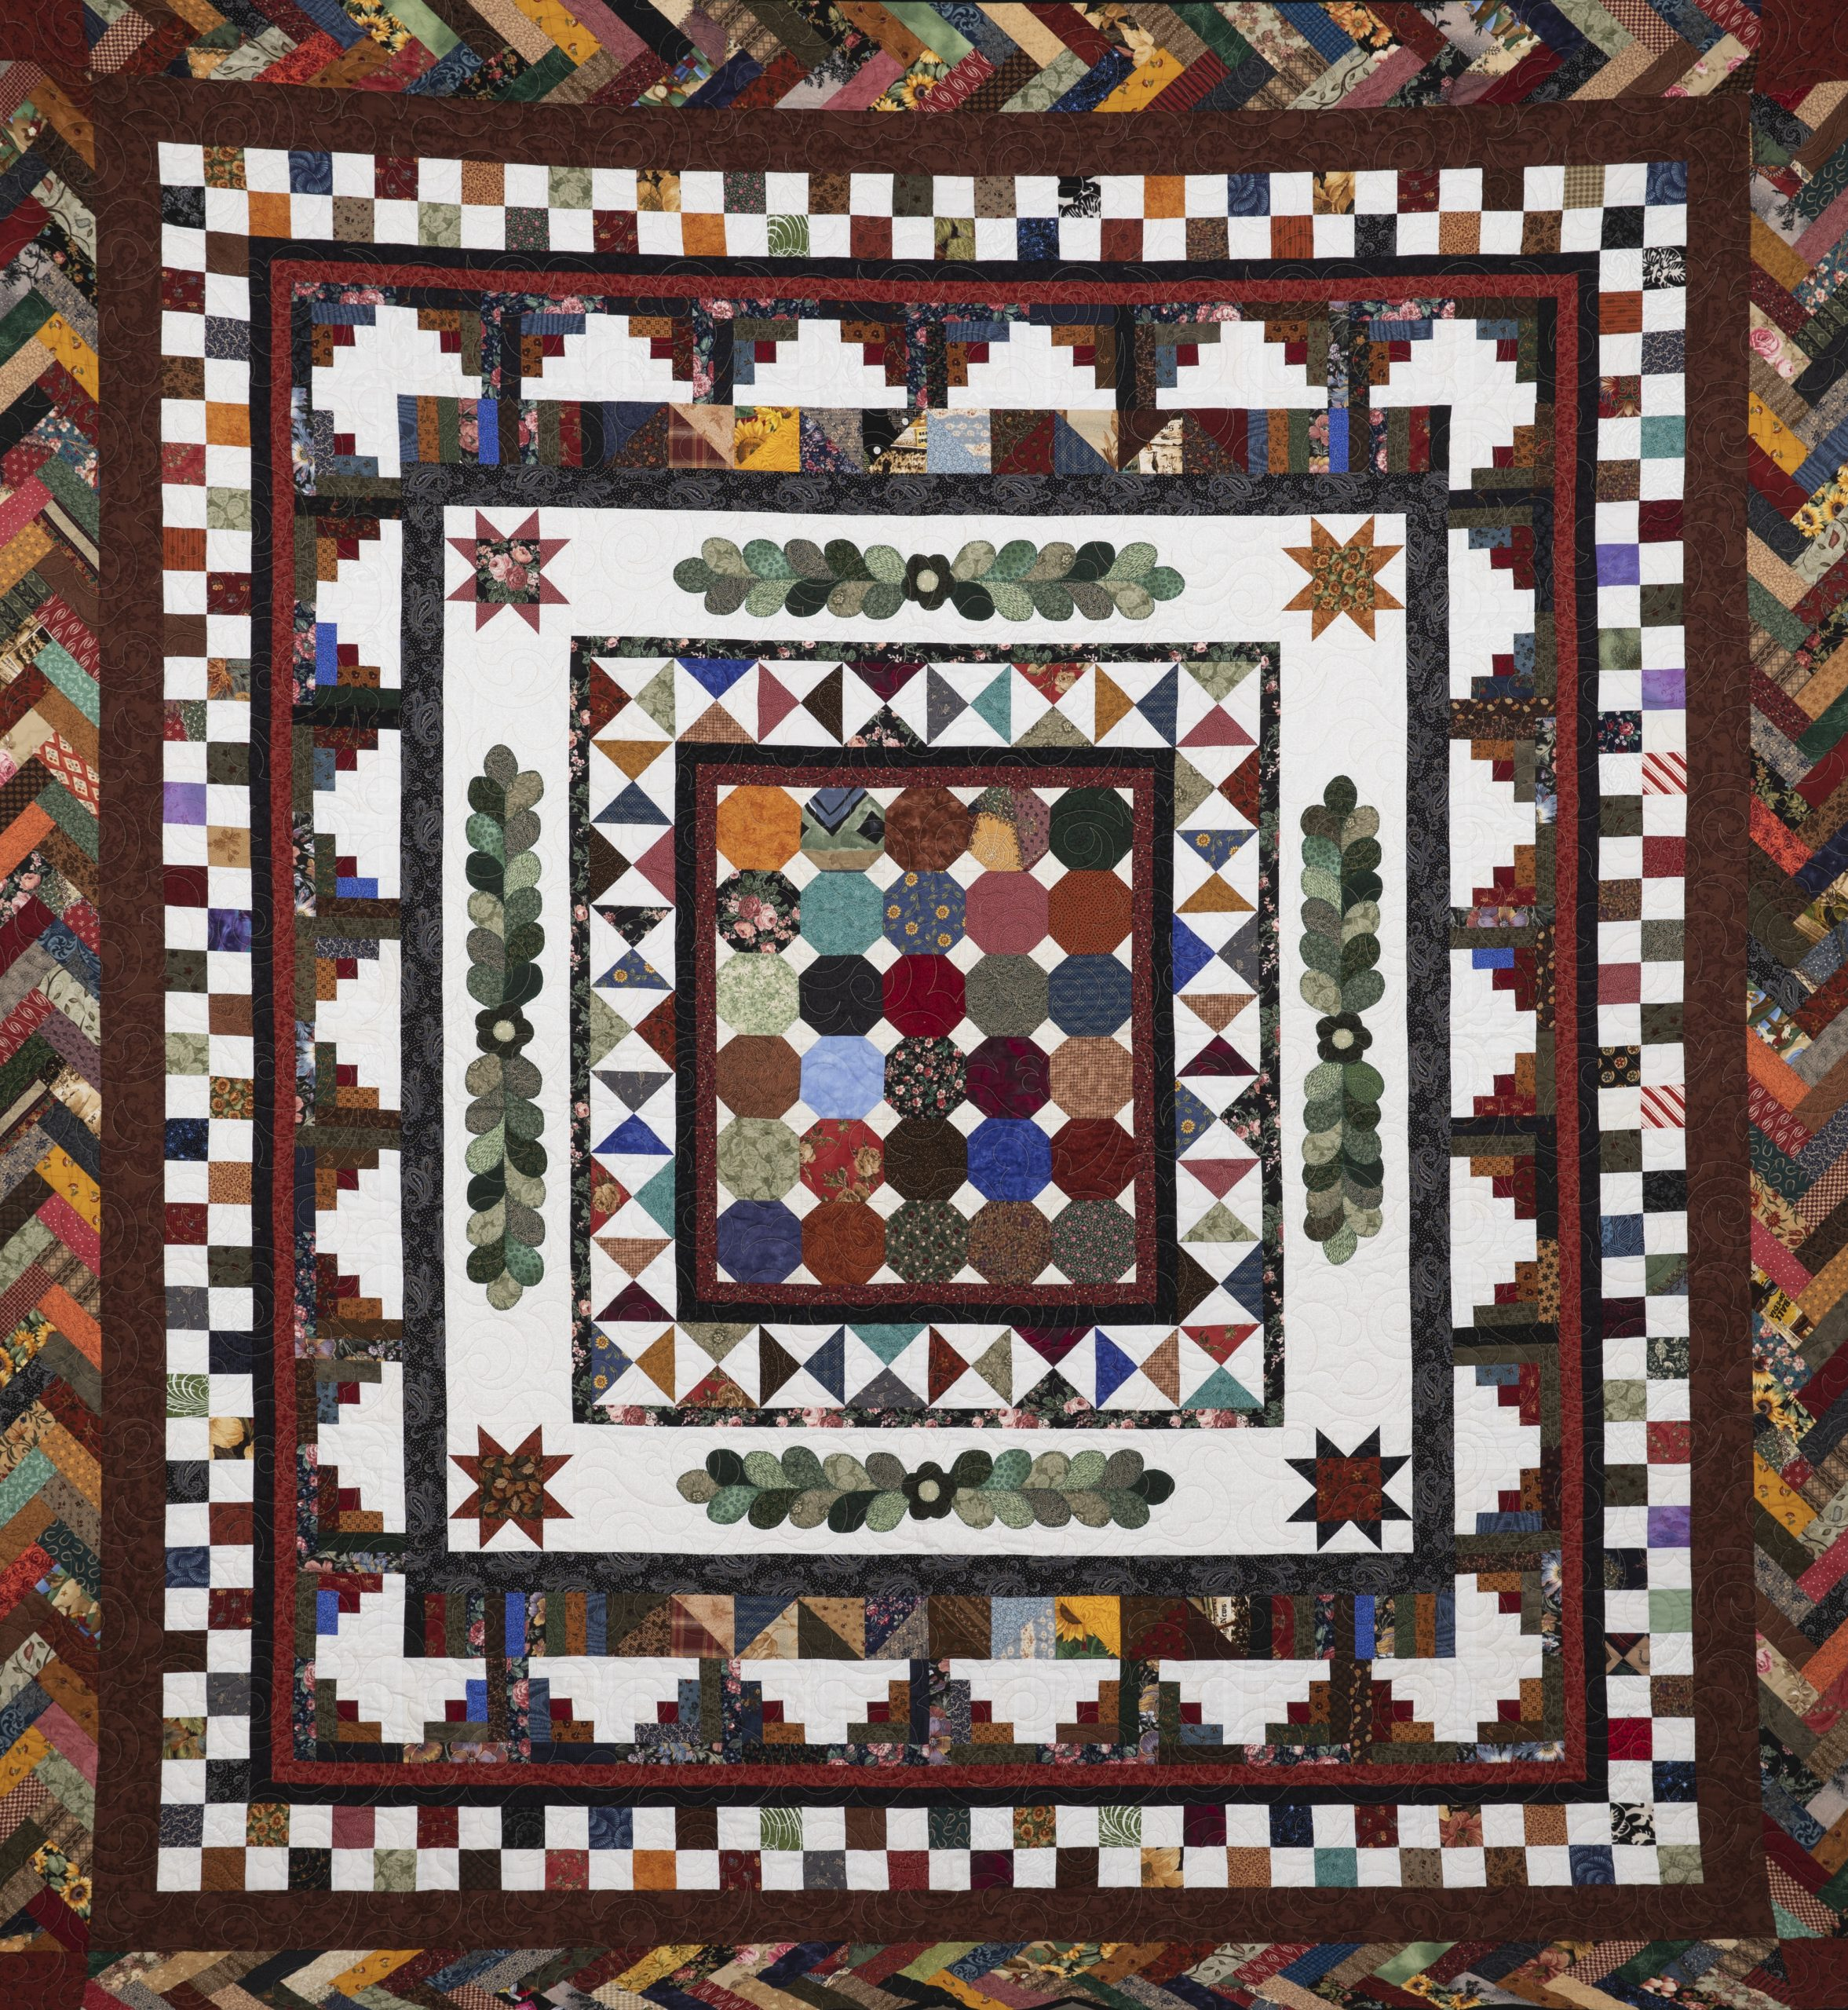 Quilt featuring fall colors and a chevron pattern around the edges giving the quilt movement around the edges